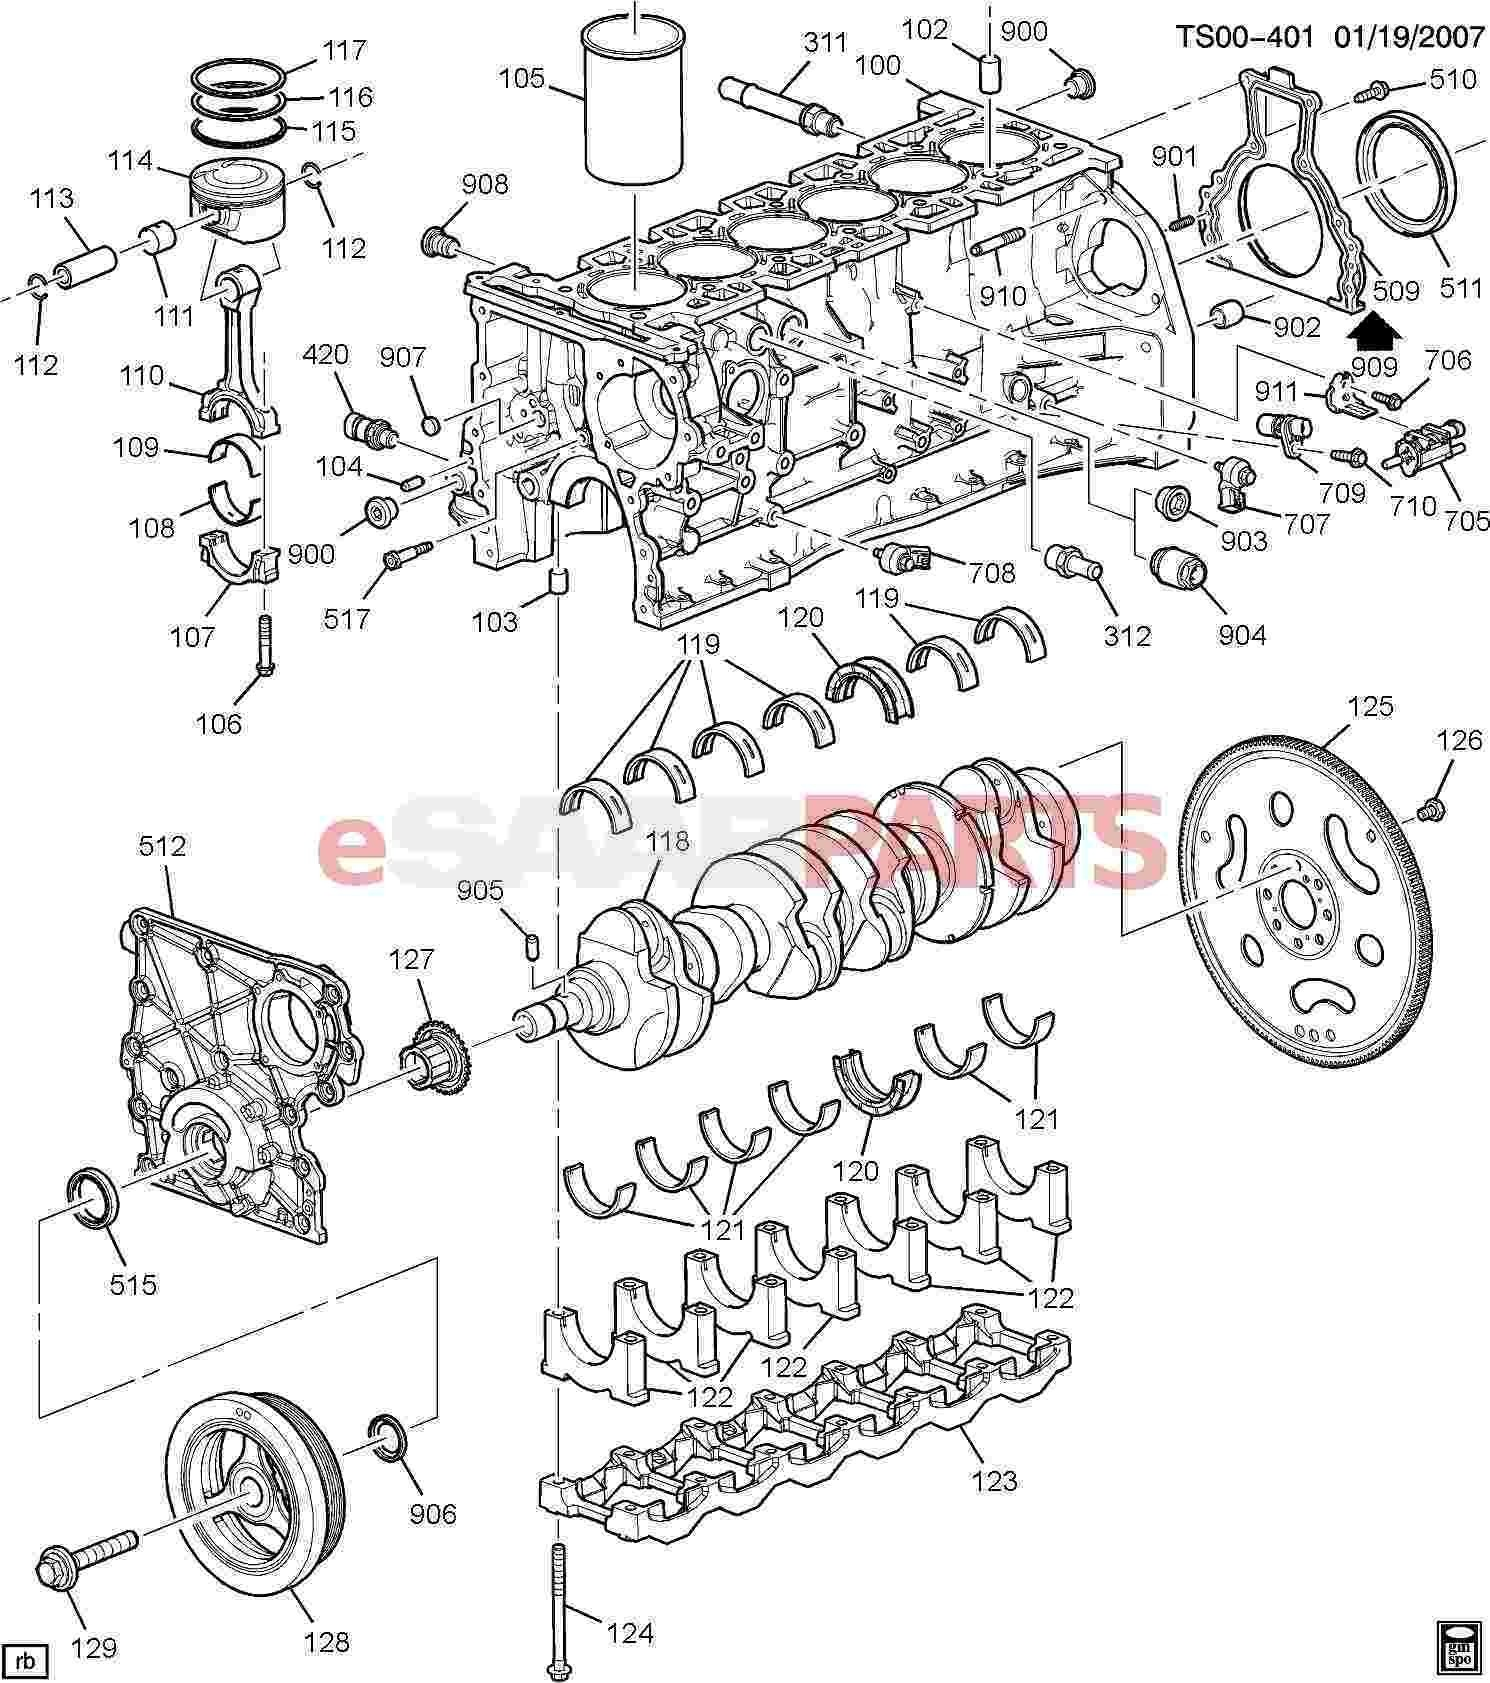 Toyota Camry Engine Parts Diagram Auto Engine Parts Diagram Of Toyota Camry Engine Parts Diagram